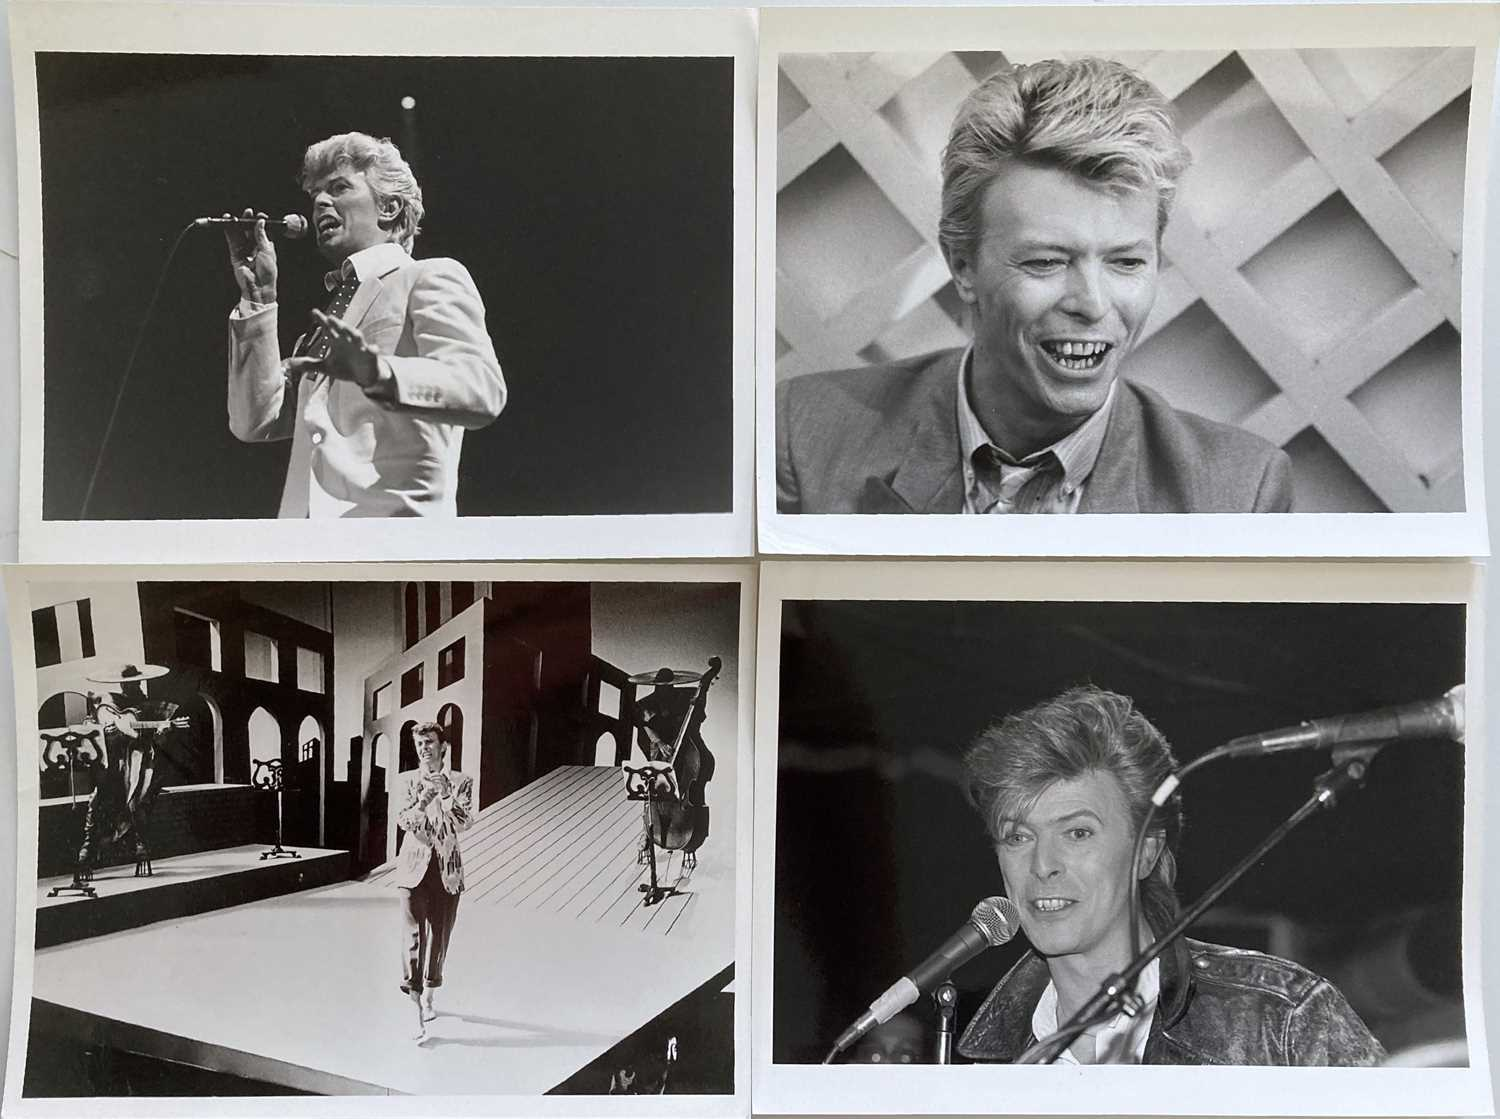 MUSIC PHOTOGRAPHS - DAVID BOWIE. - Image 3 of 3